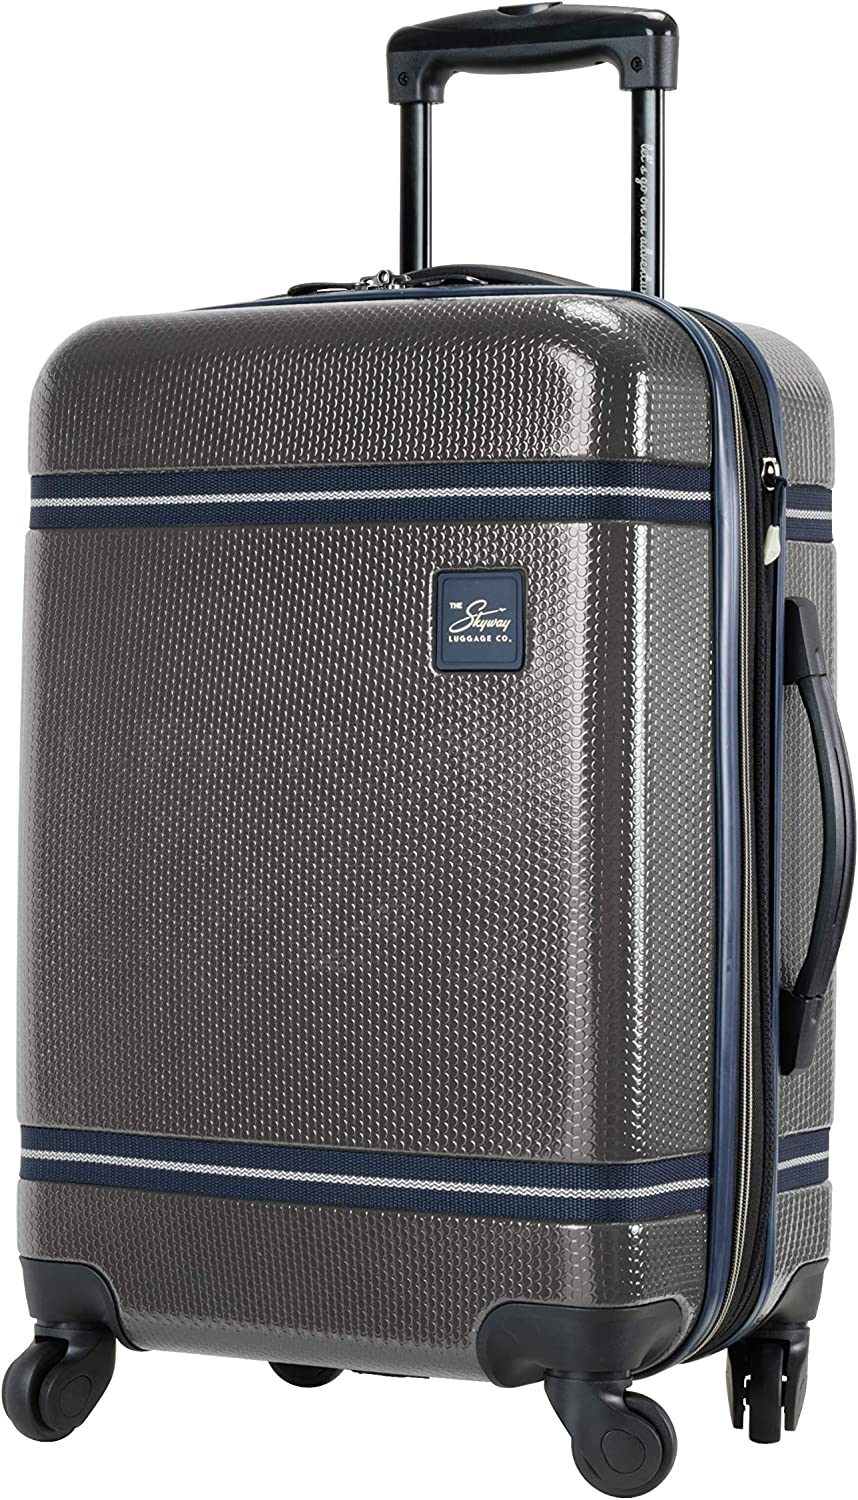 Skyway Portage Bay Carry on 20-Inch